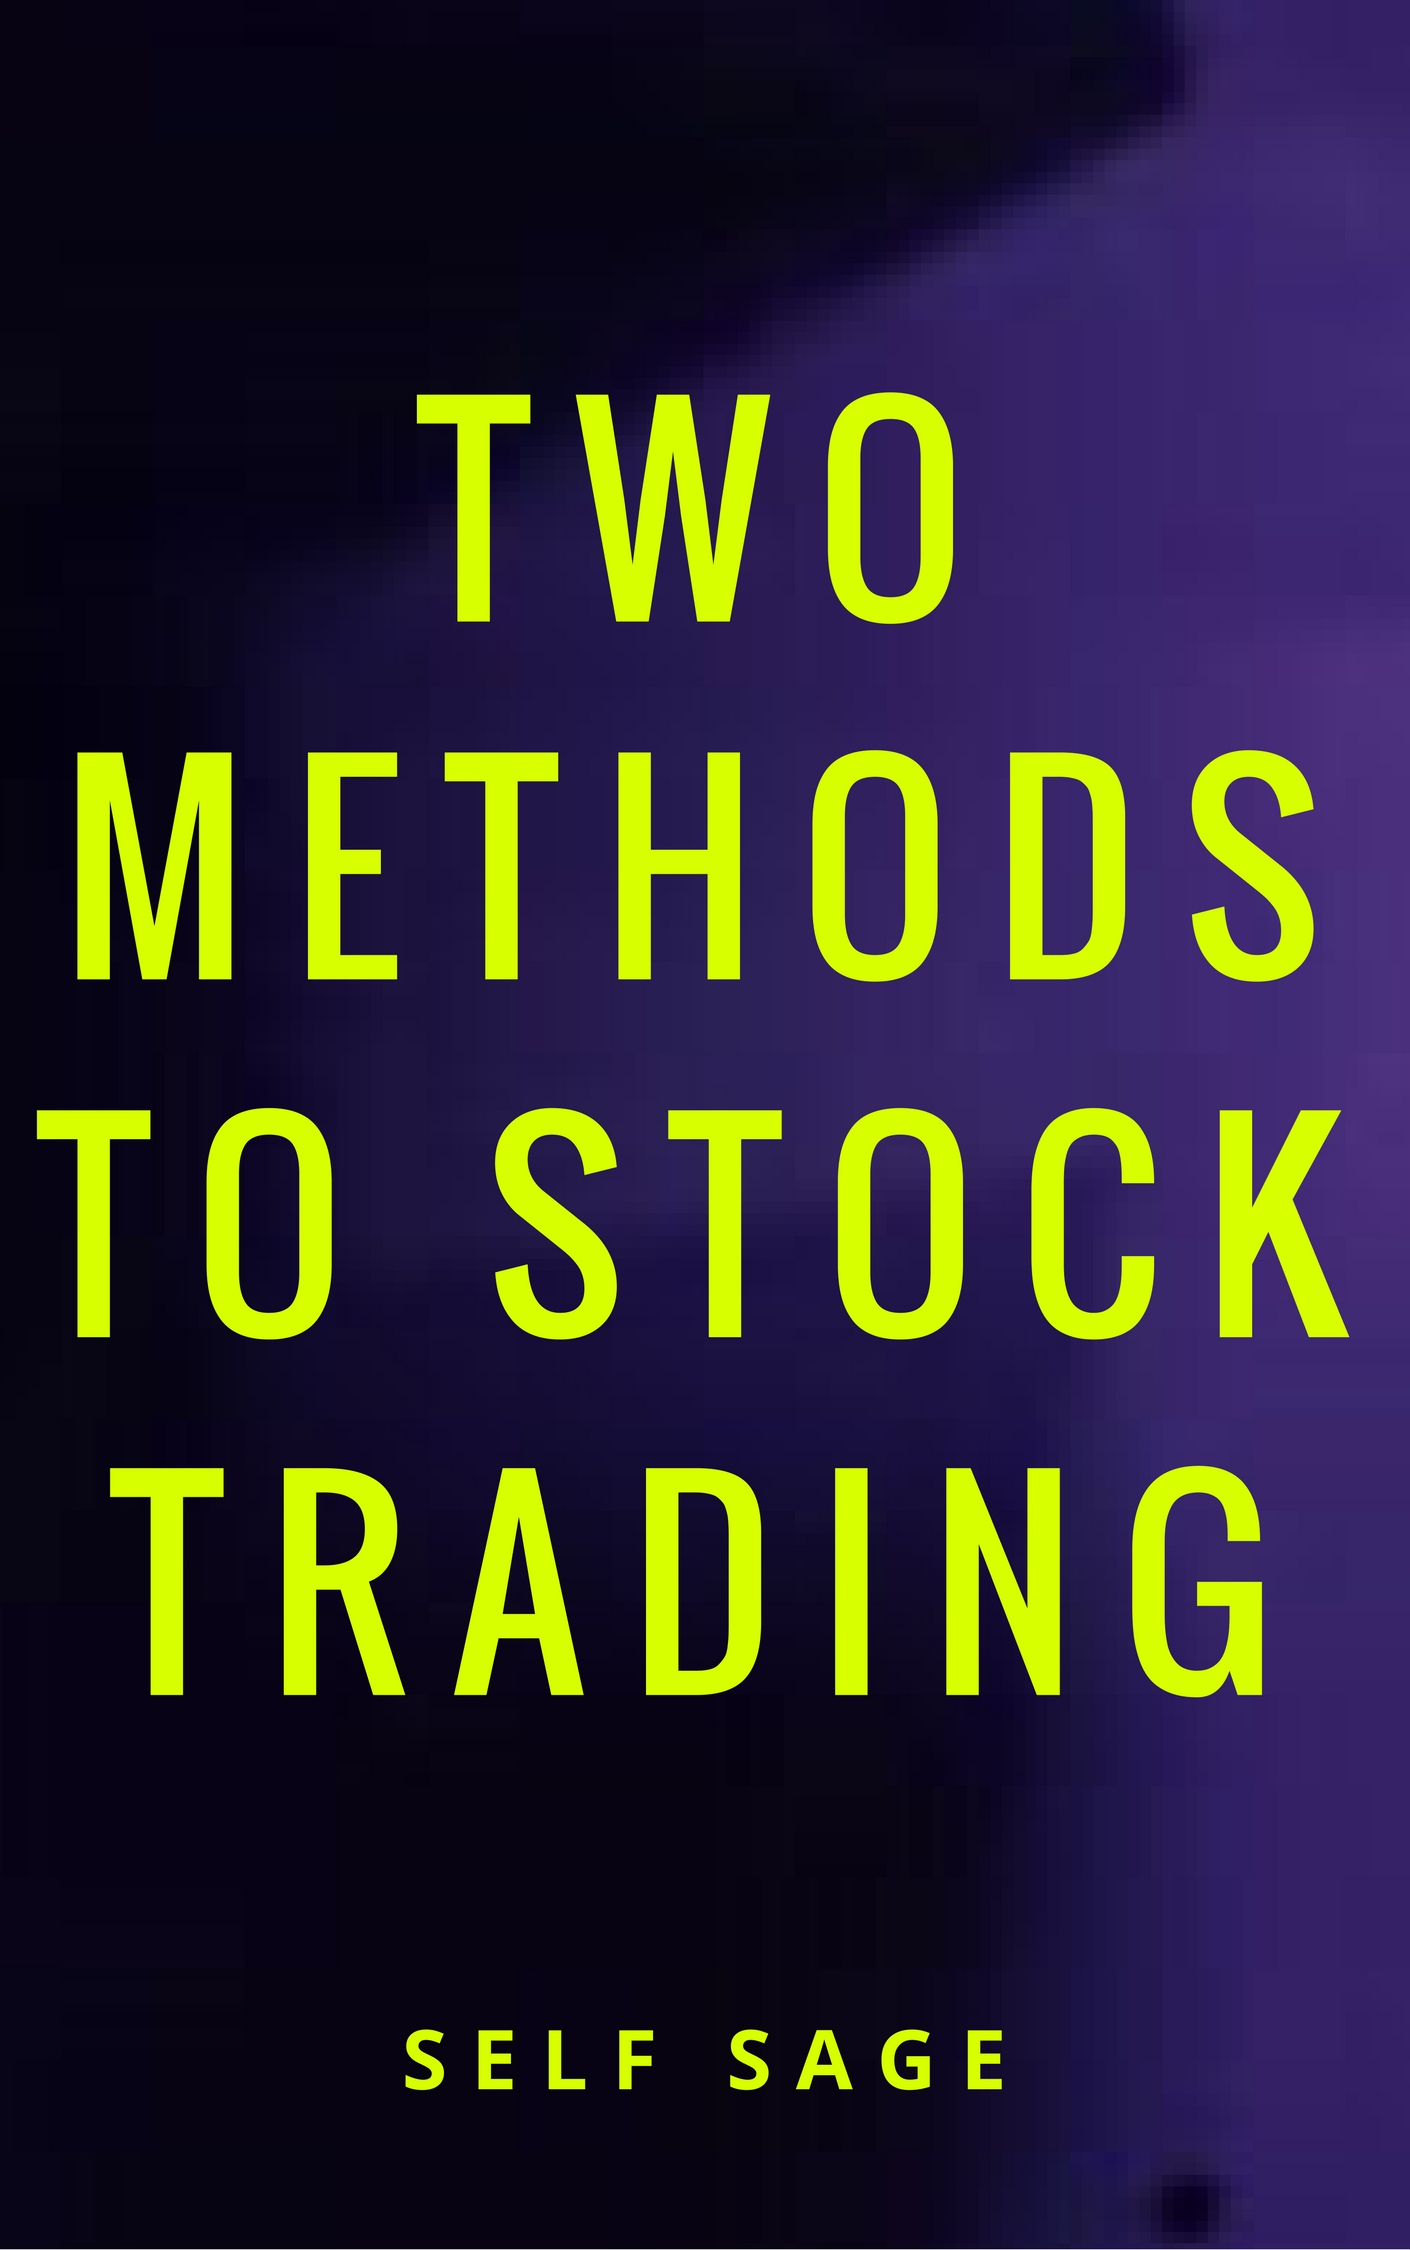 Two methods to stock trading ( Buy & Sell )